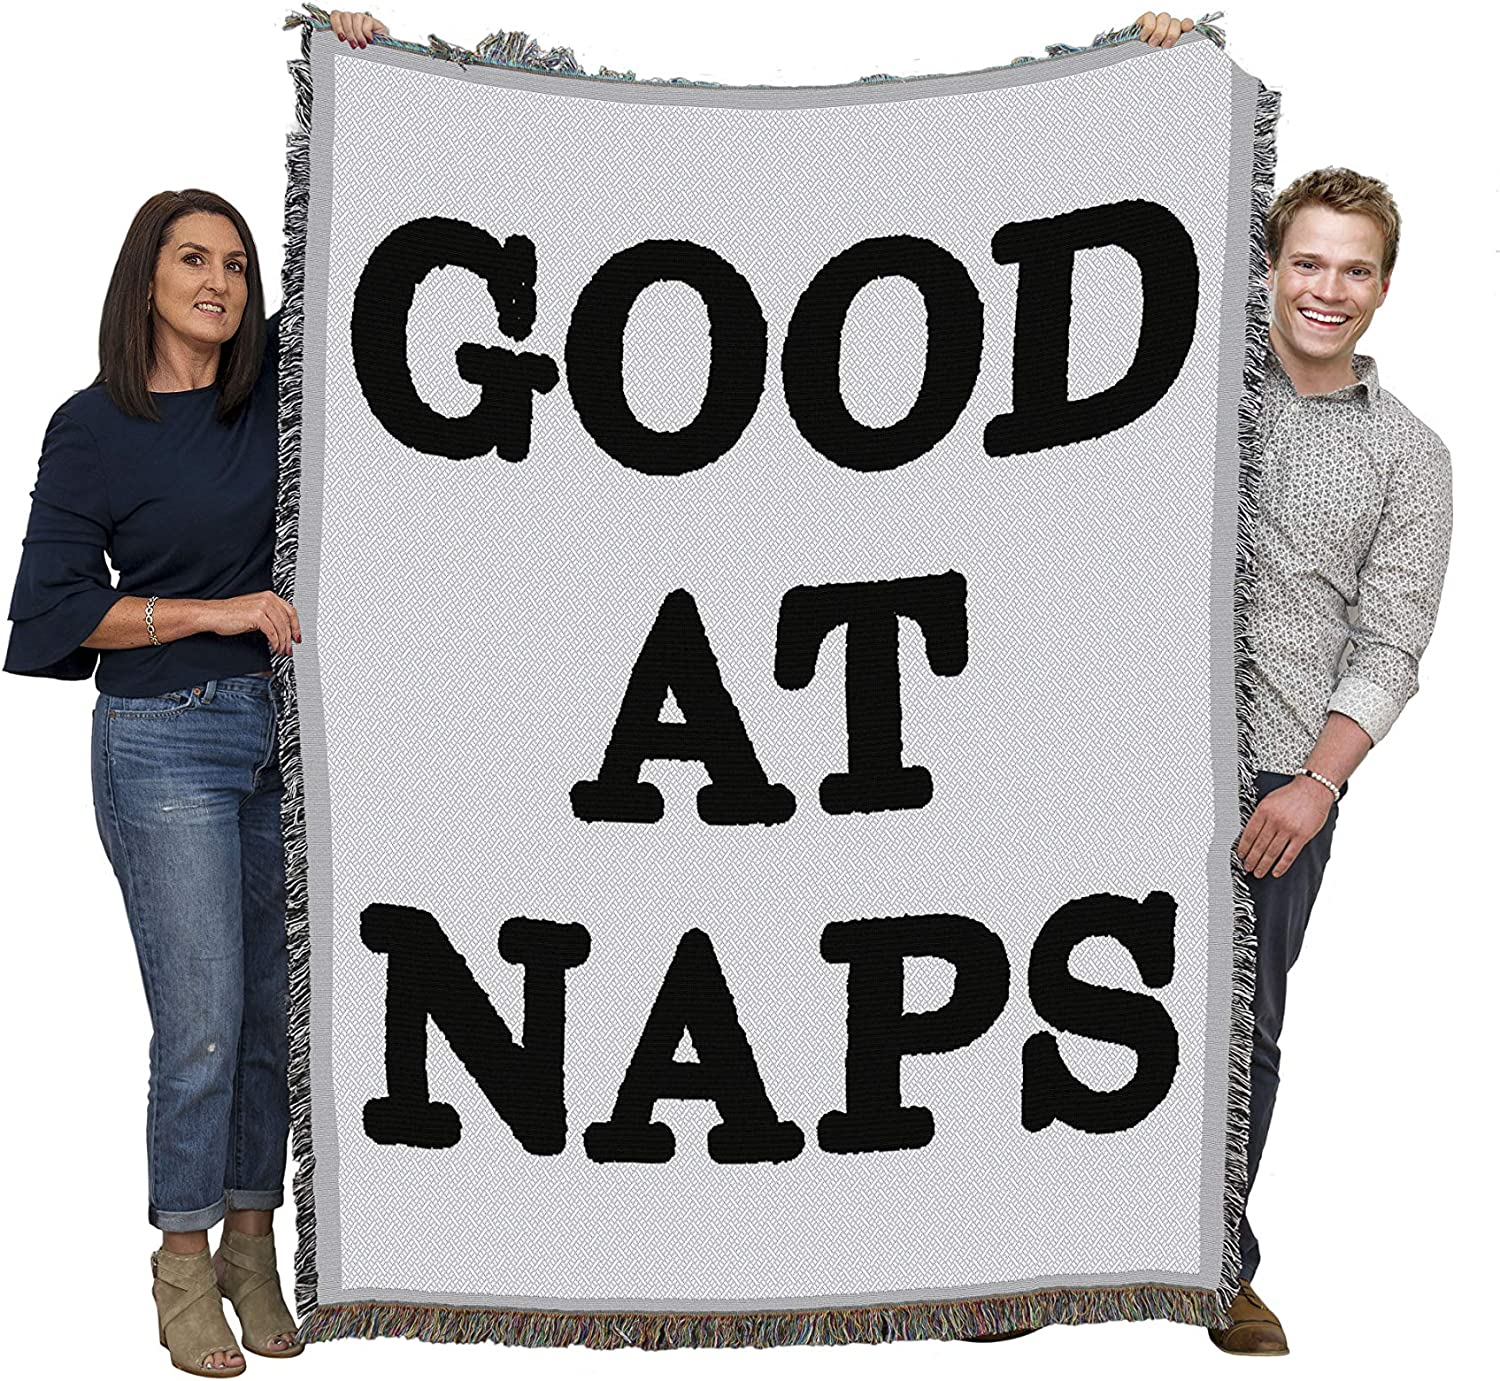 Good at Naps - Cotton Woven Blanket Throw - Made in The USA (72x54)